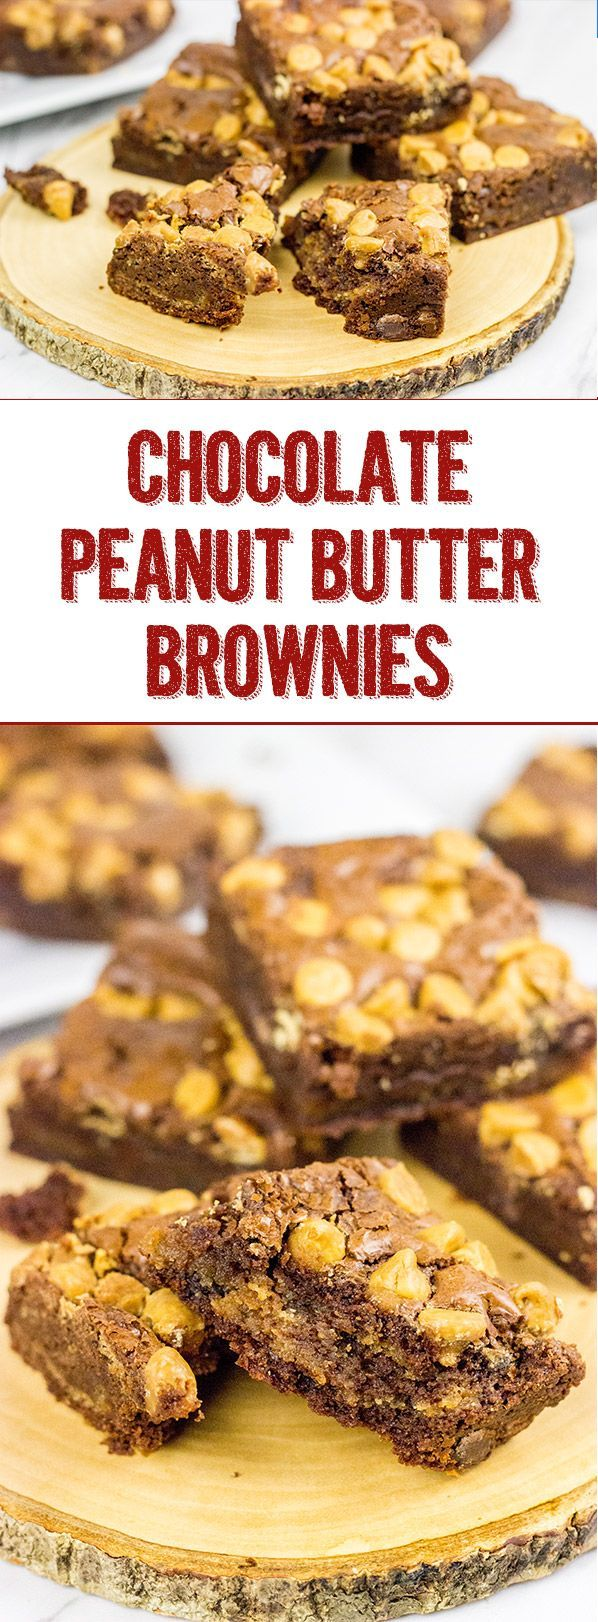 Infused with peanut butter, these Chocolate Peanut Butter Brownies are the perfect sweet treat!